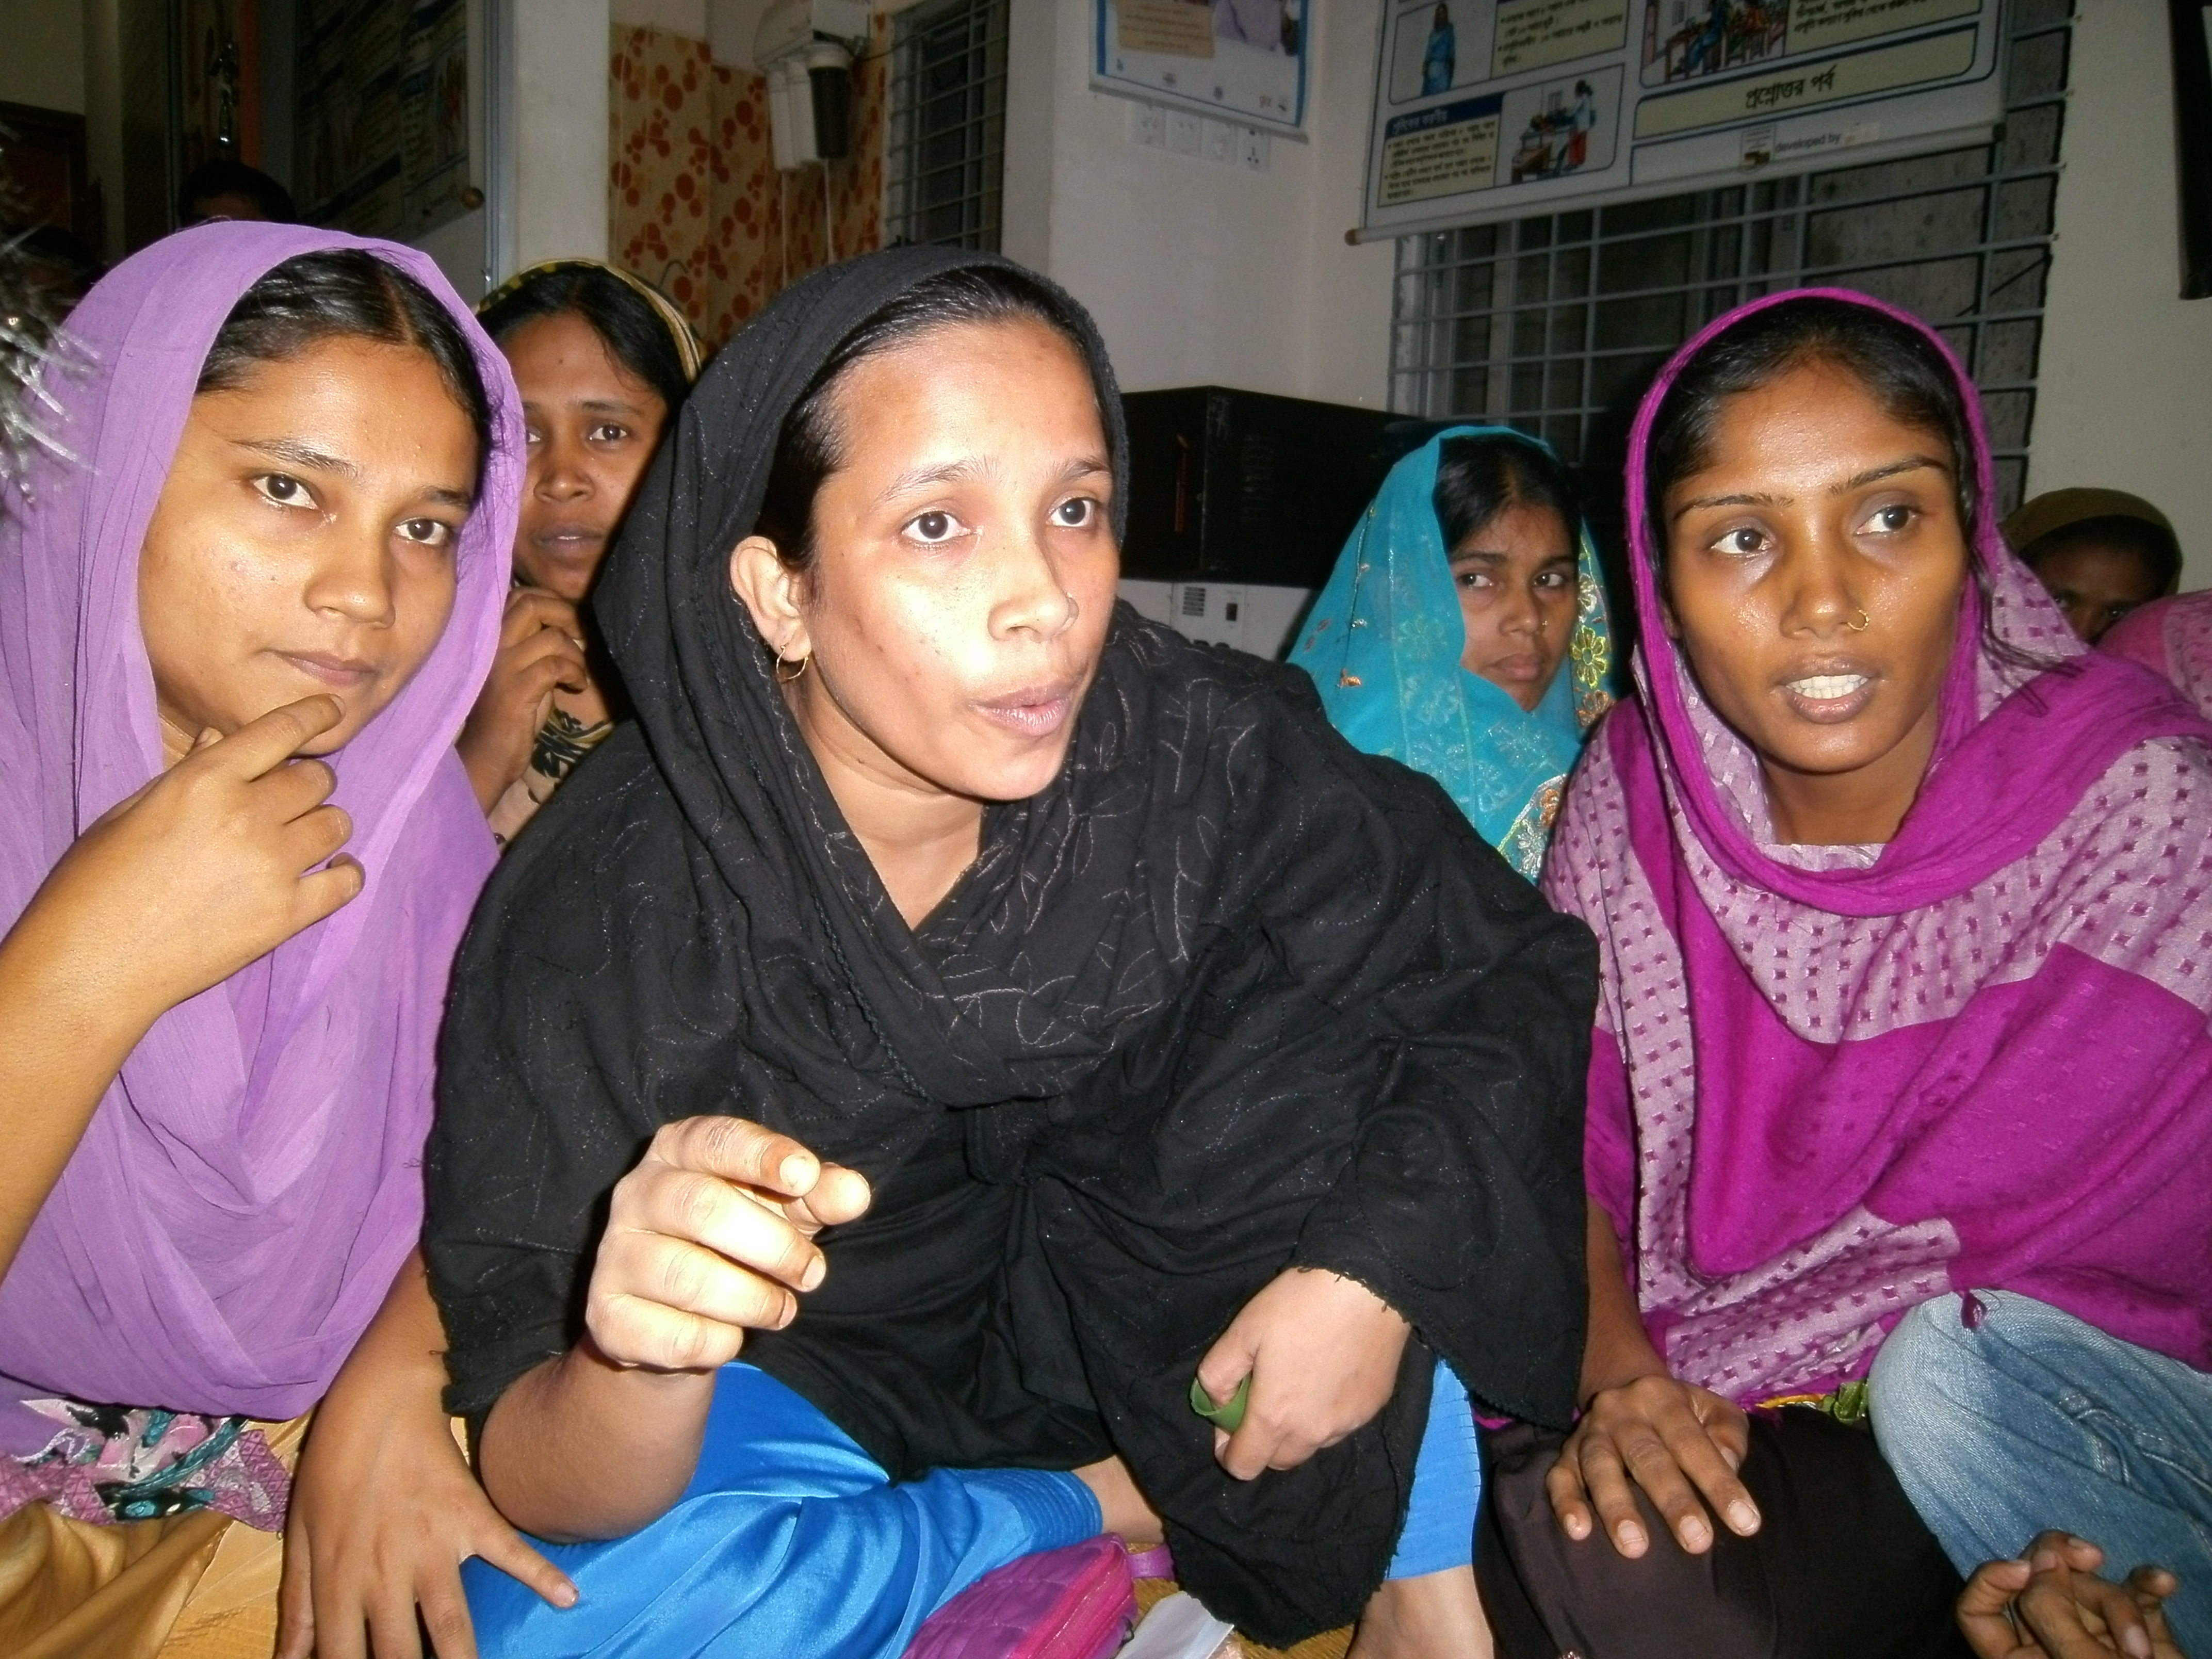 womens workers of bangladesh garments Case studies: garment workers around the globe factory workers in bangladesh a group of 10 women produce garments.